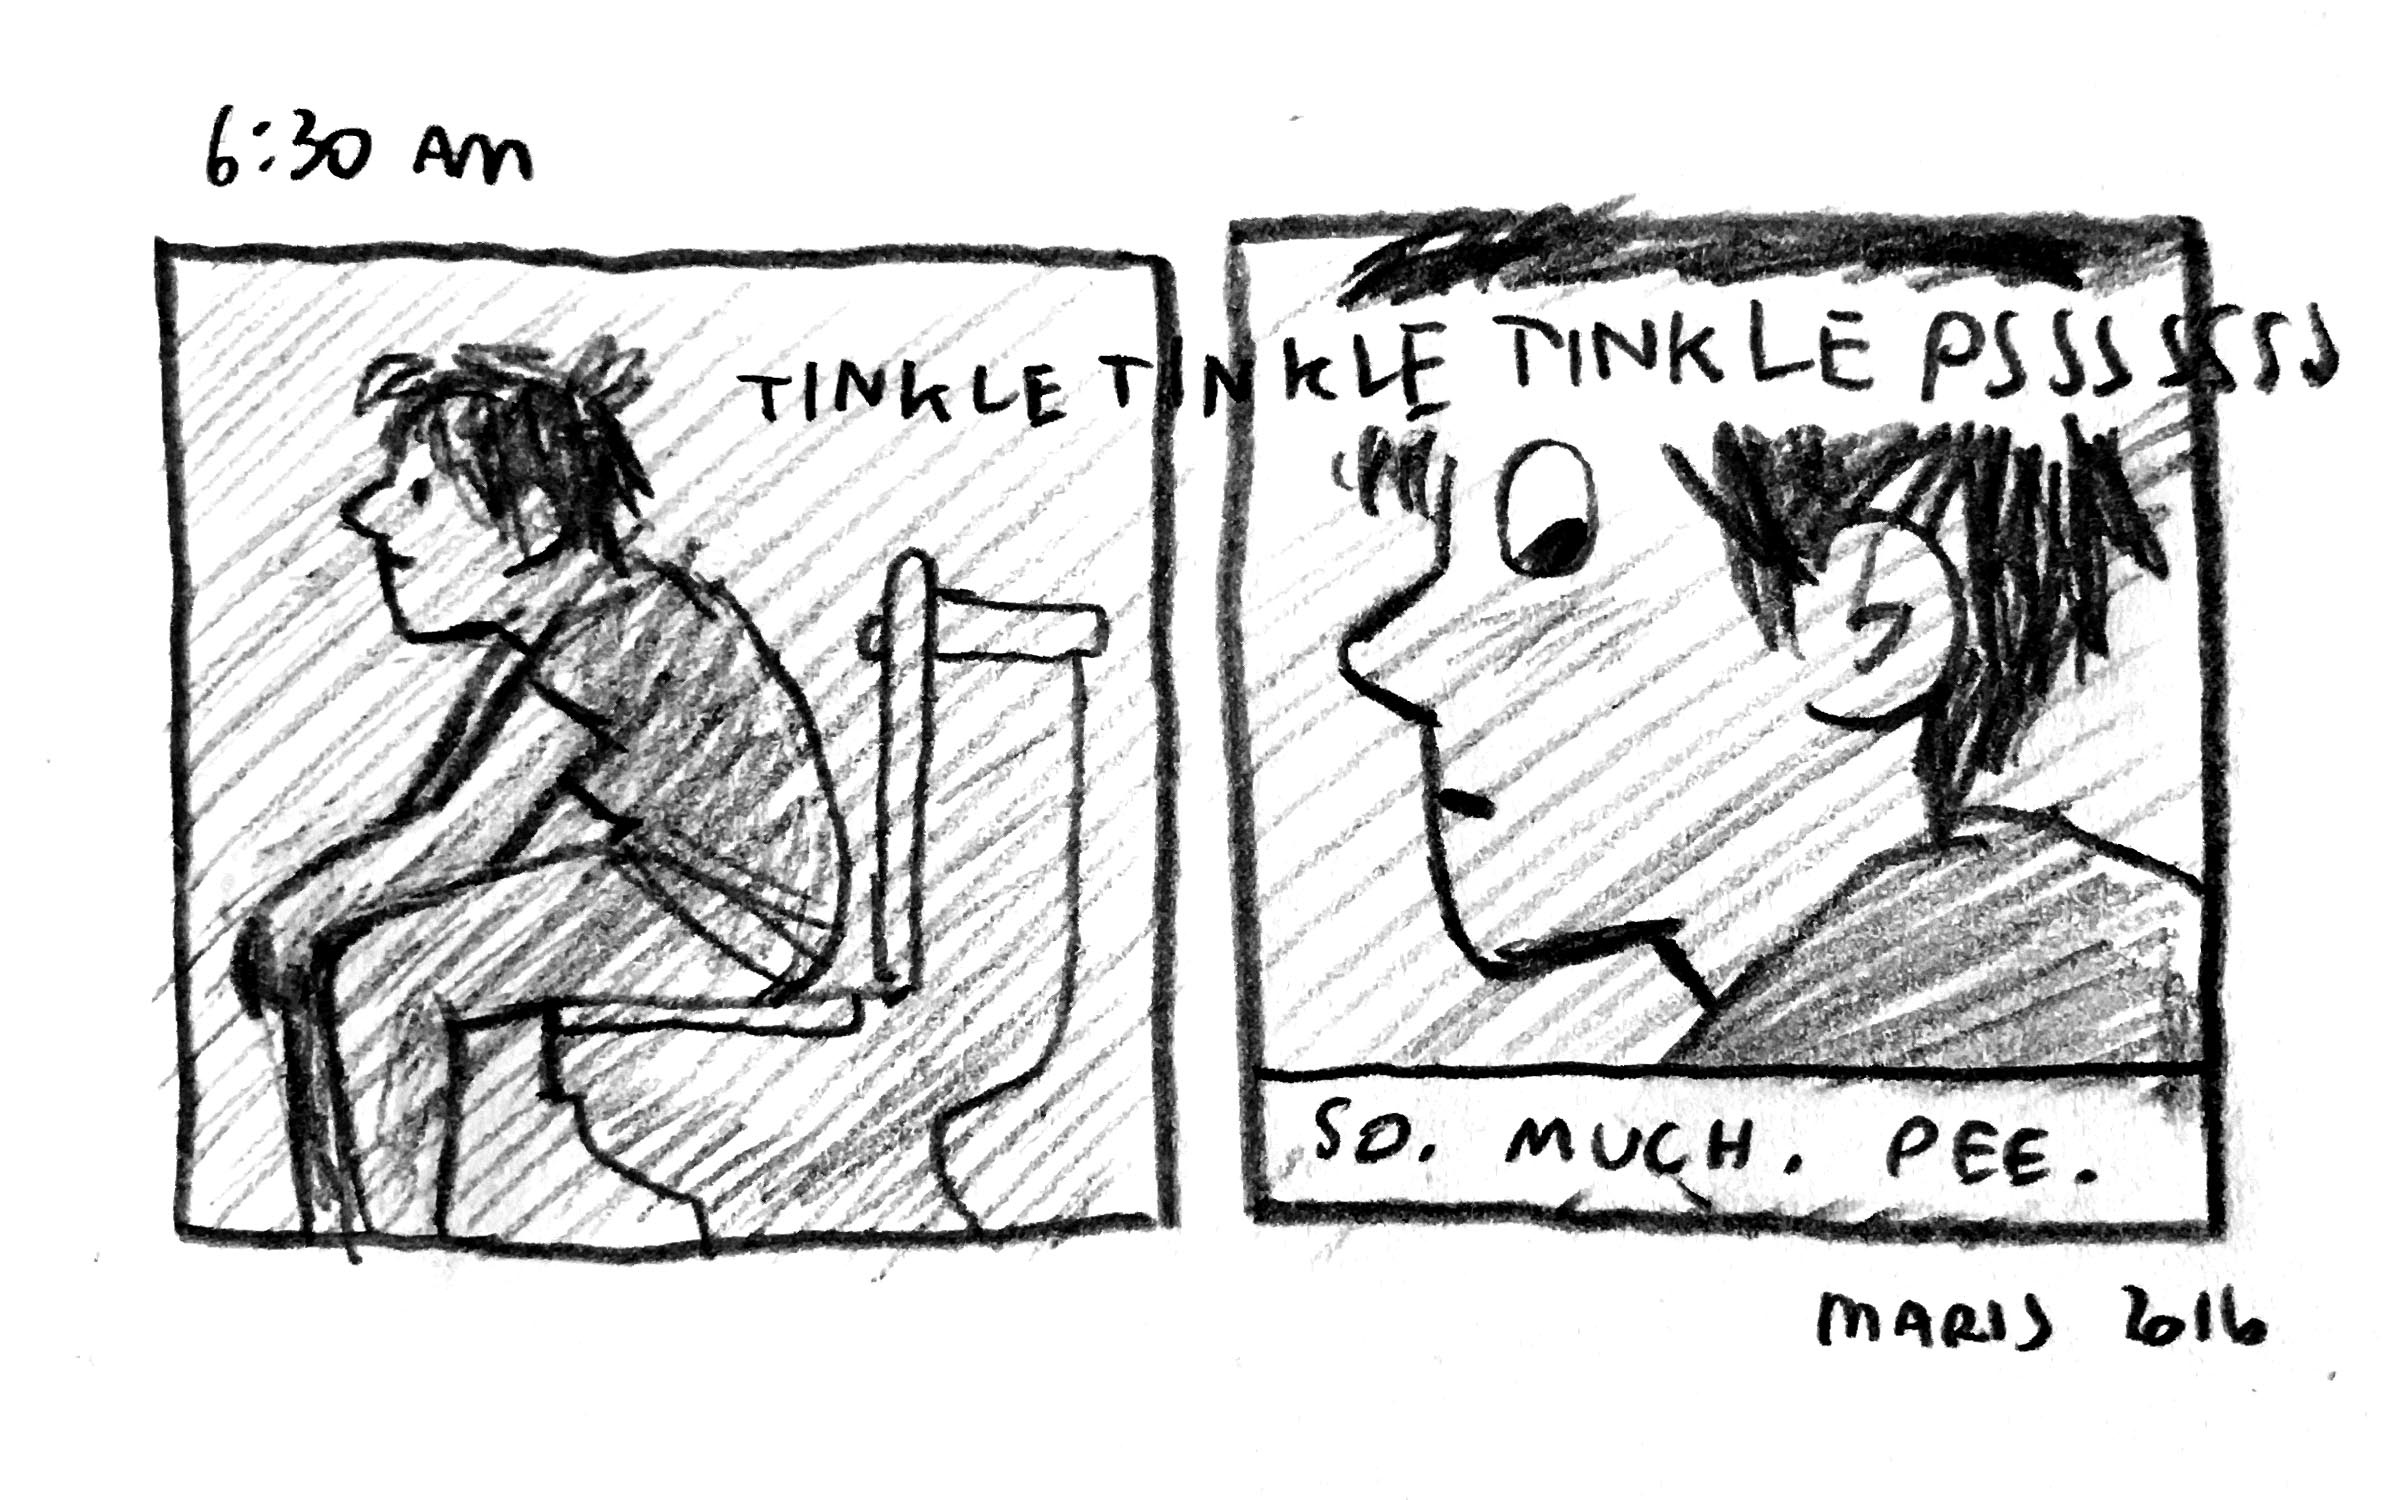 02_mw_2016_hourlies.jpg